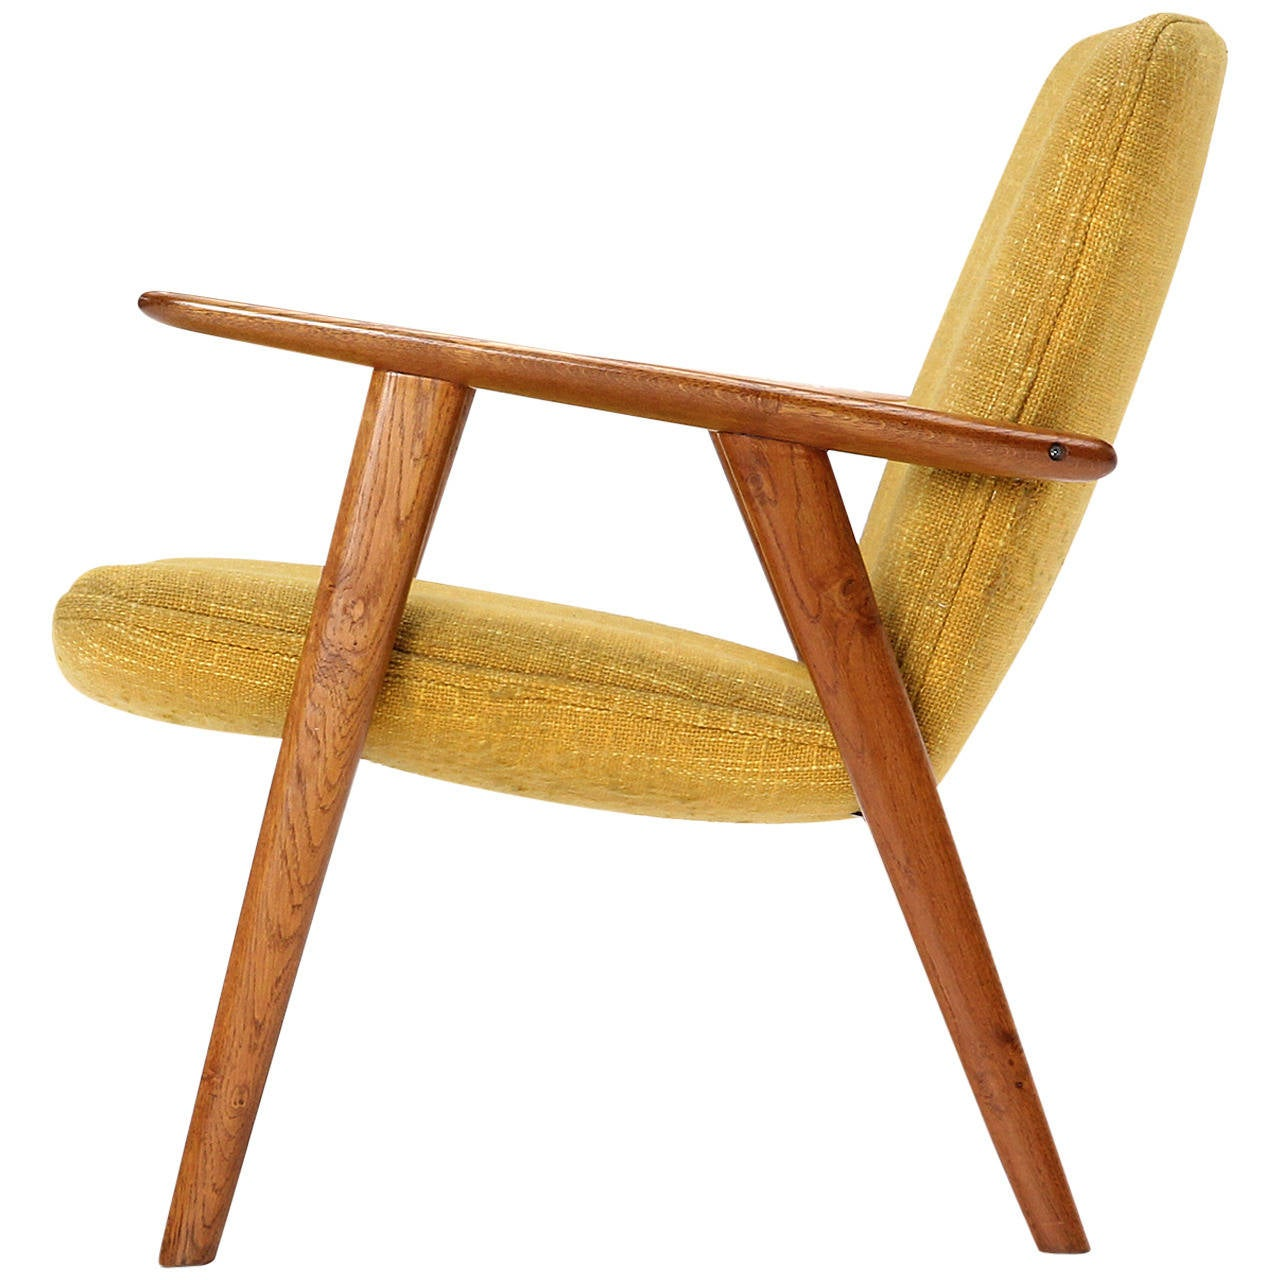 oak reading chair by hans j wegner for sale at 1stdibs. Black Bedroom Furniture Sets. Home Design Ideas